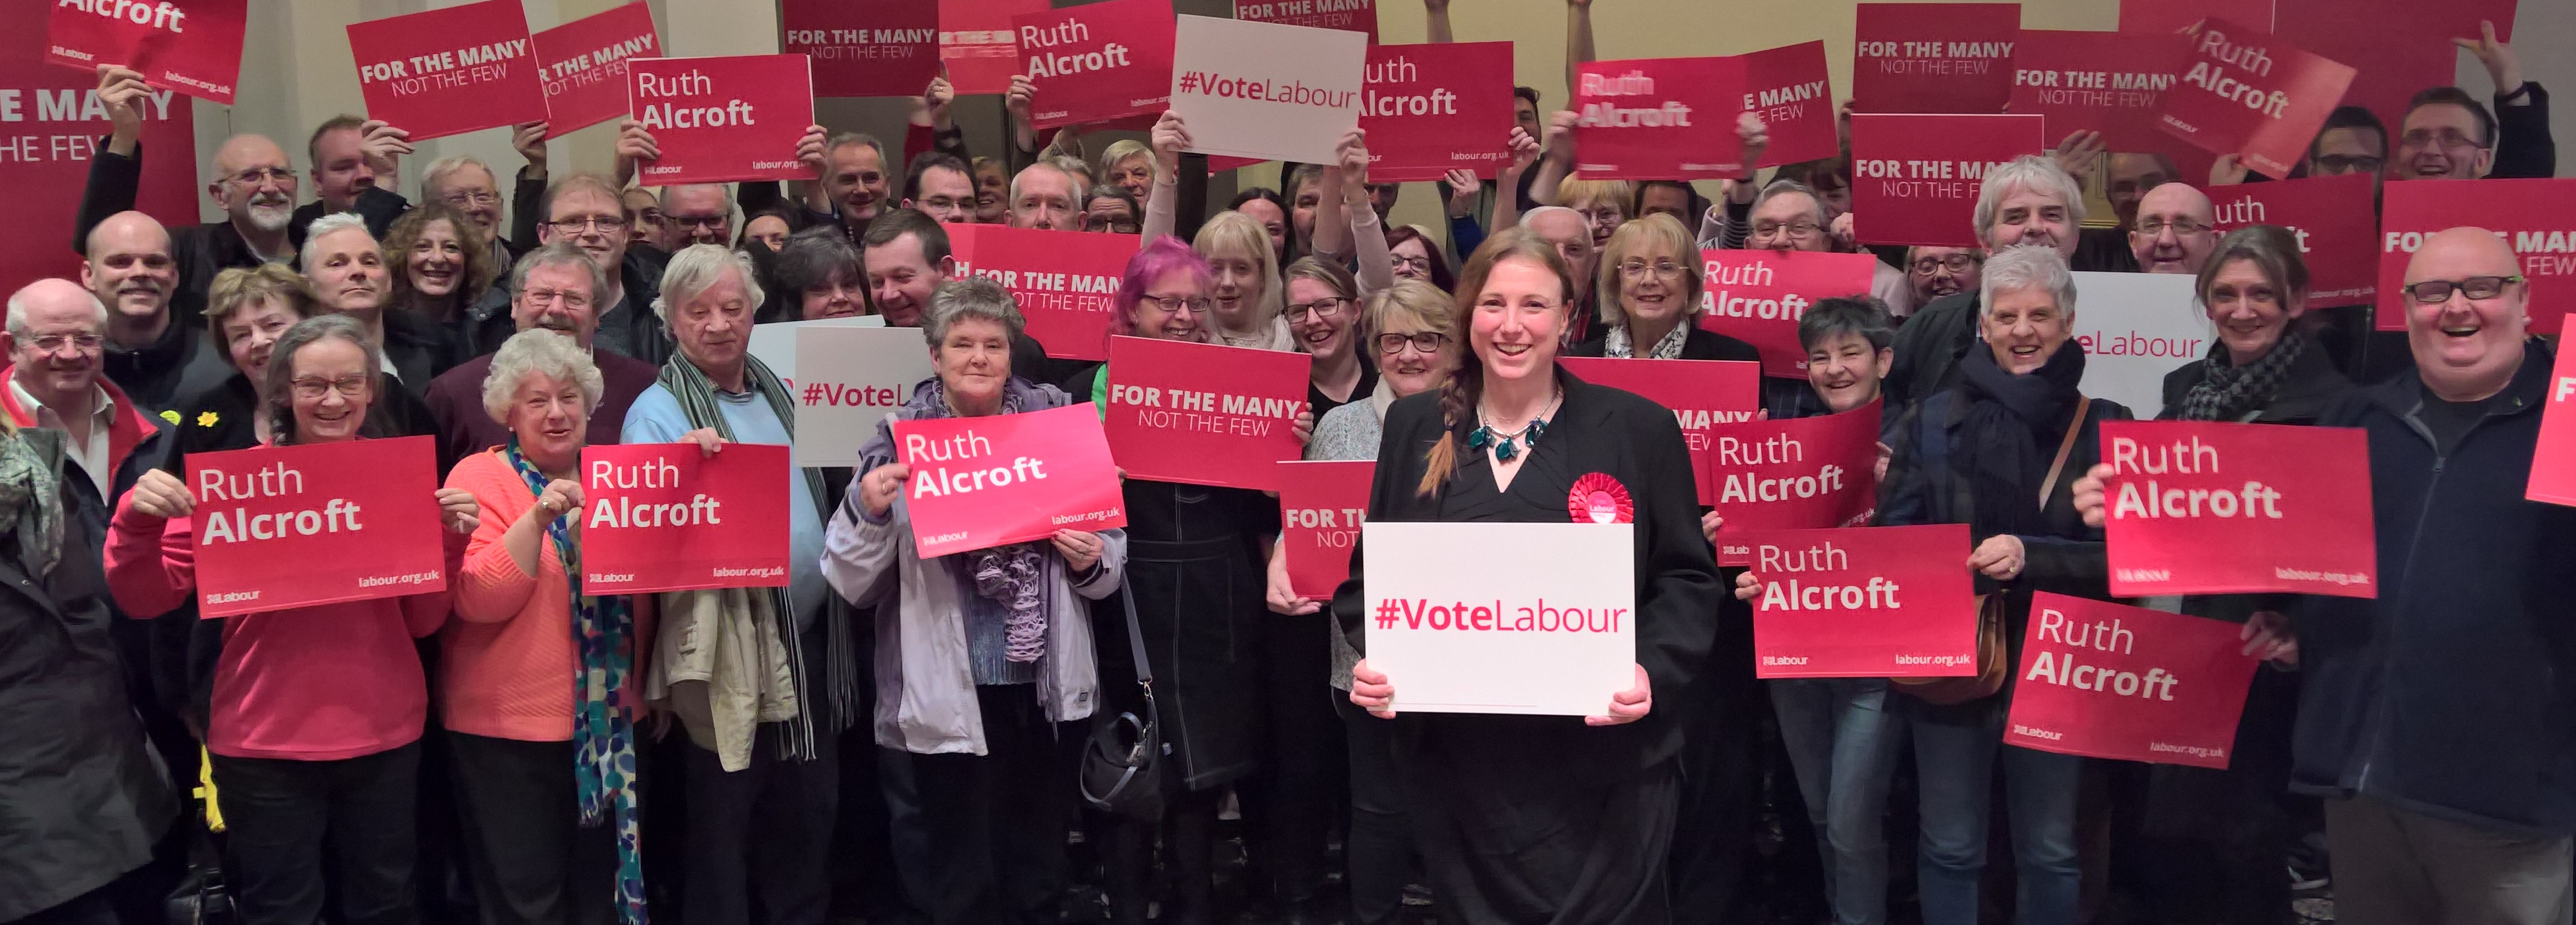 Ruth_Alcroft_and_Labour_Members.jpg